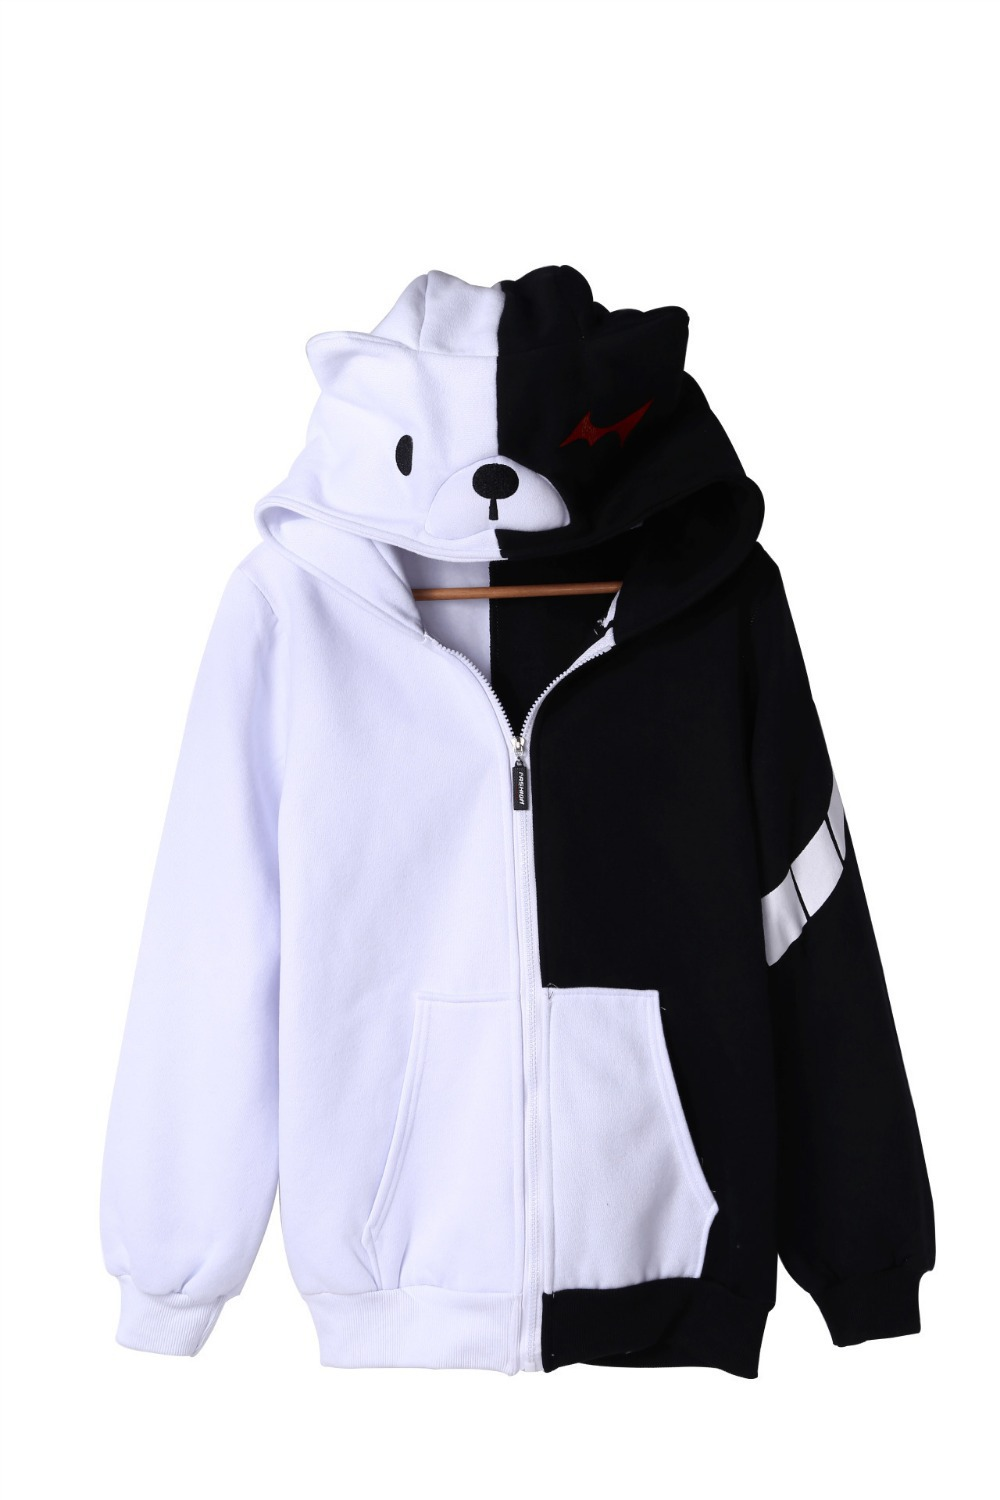 Cute New Danganronpa: Trigger Happy Havoc monokuma cosplay costumes Zipper hooded thicker anime Hoddies